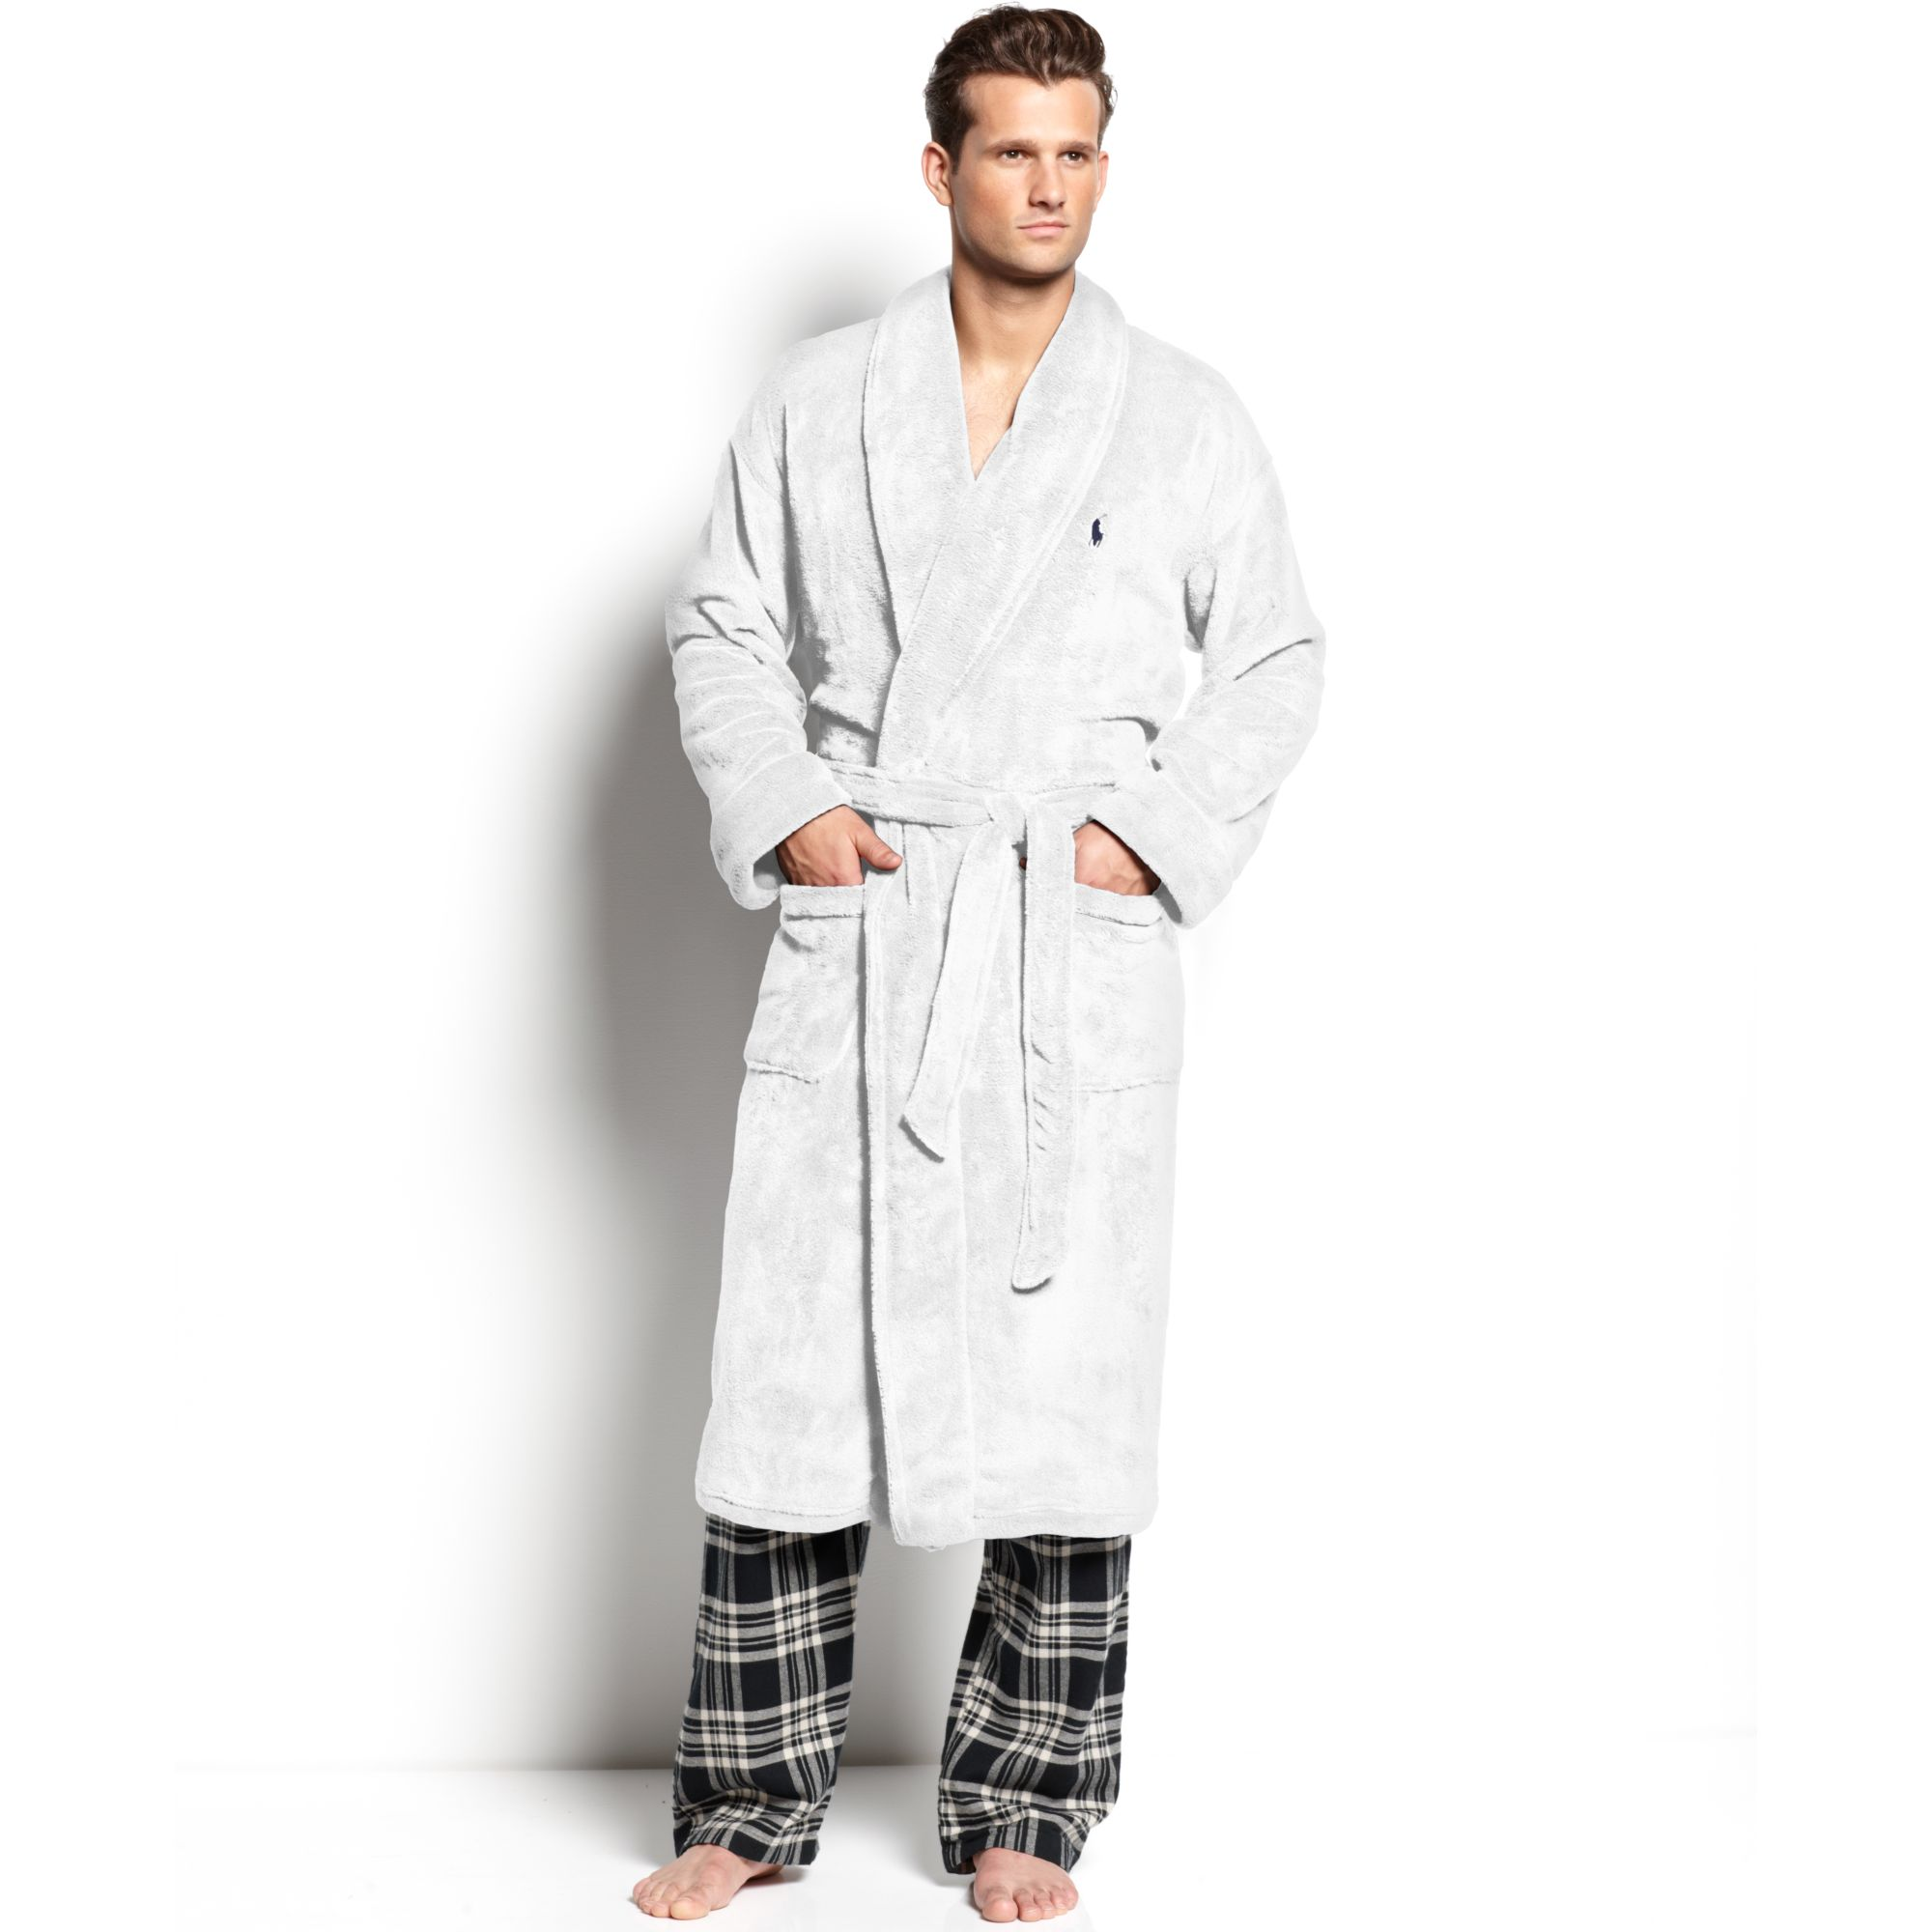 polo ralph lauren fleece shawl collar robe in white for men lyst. Black Bedroom Furniture Sets. Home Design Ideas